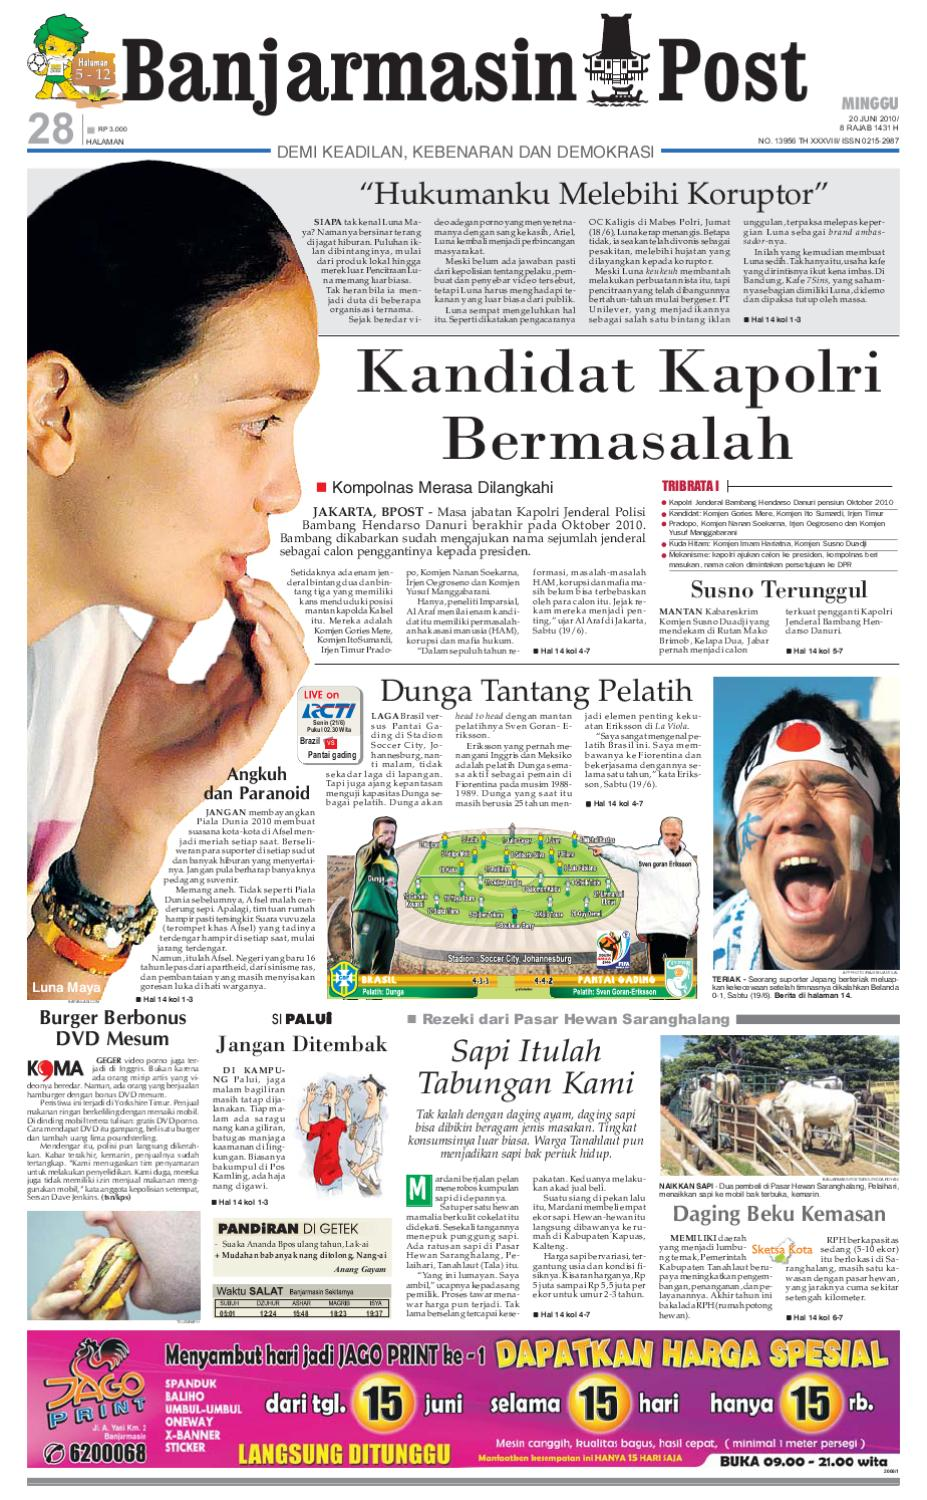 Banjarmasin Post Edisi Minggu 20 Juni 2010 By Tcash Vaganza 35 Sarung Orange Instan Anak Usia 1 7 Tahun Issuu